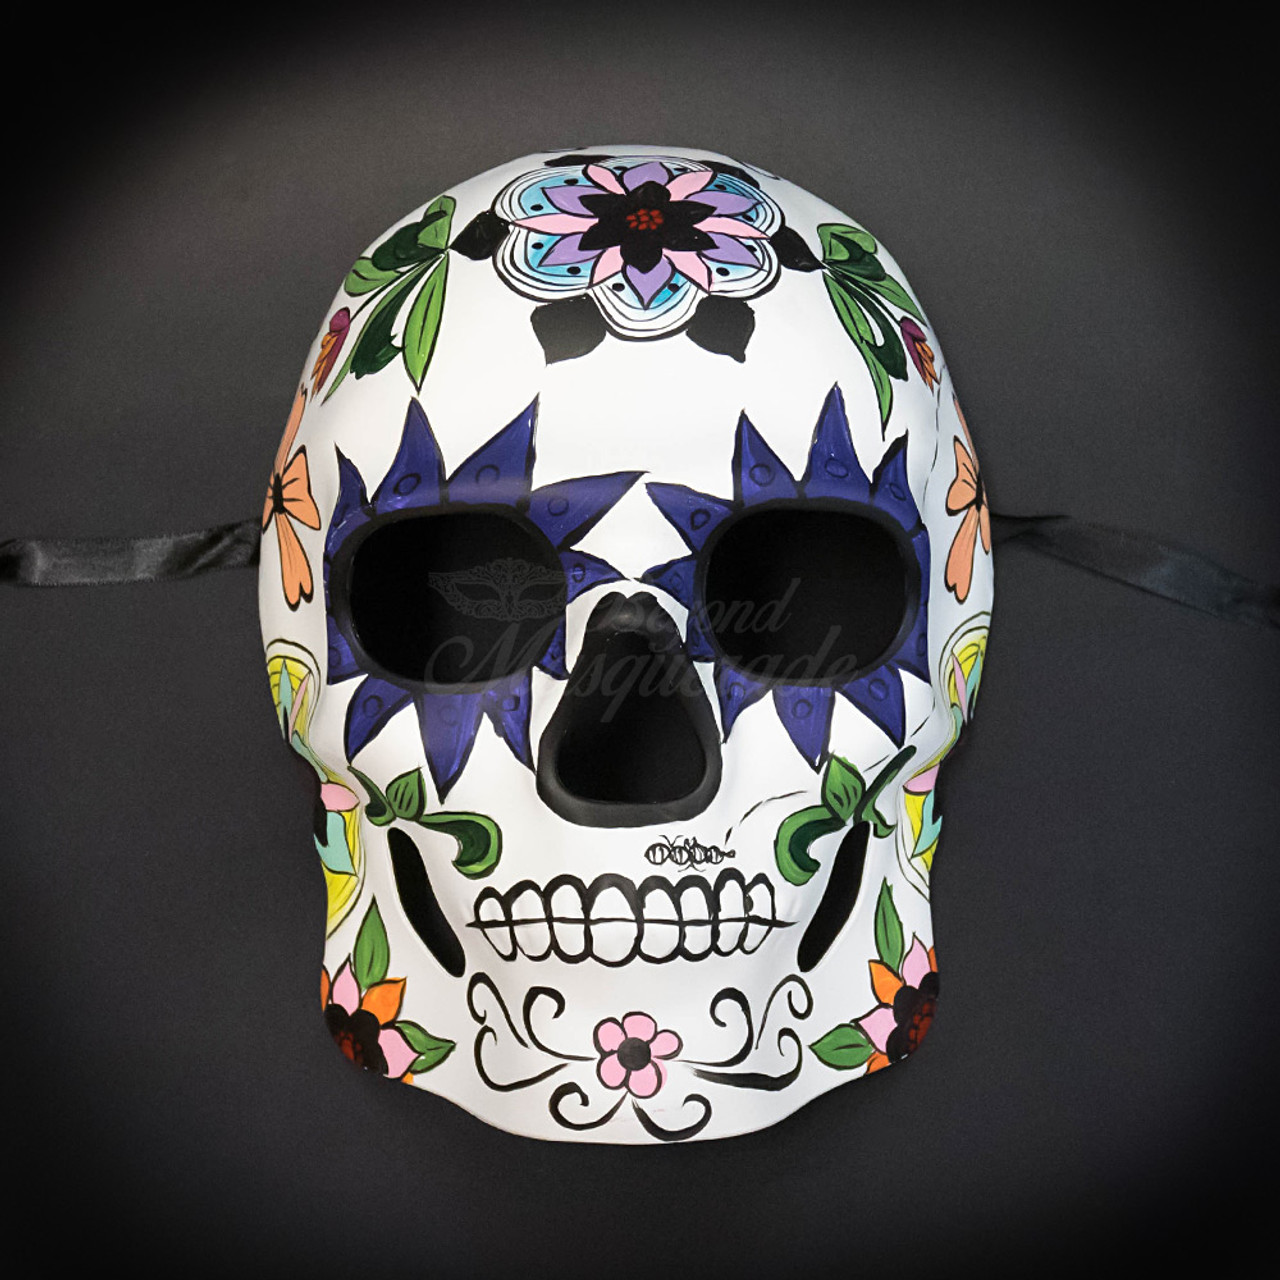 Day of the Dead Masks  Dia de los Muertos Masquerade Mask M38242  BeyondMasqueradecom